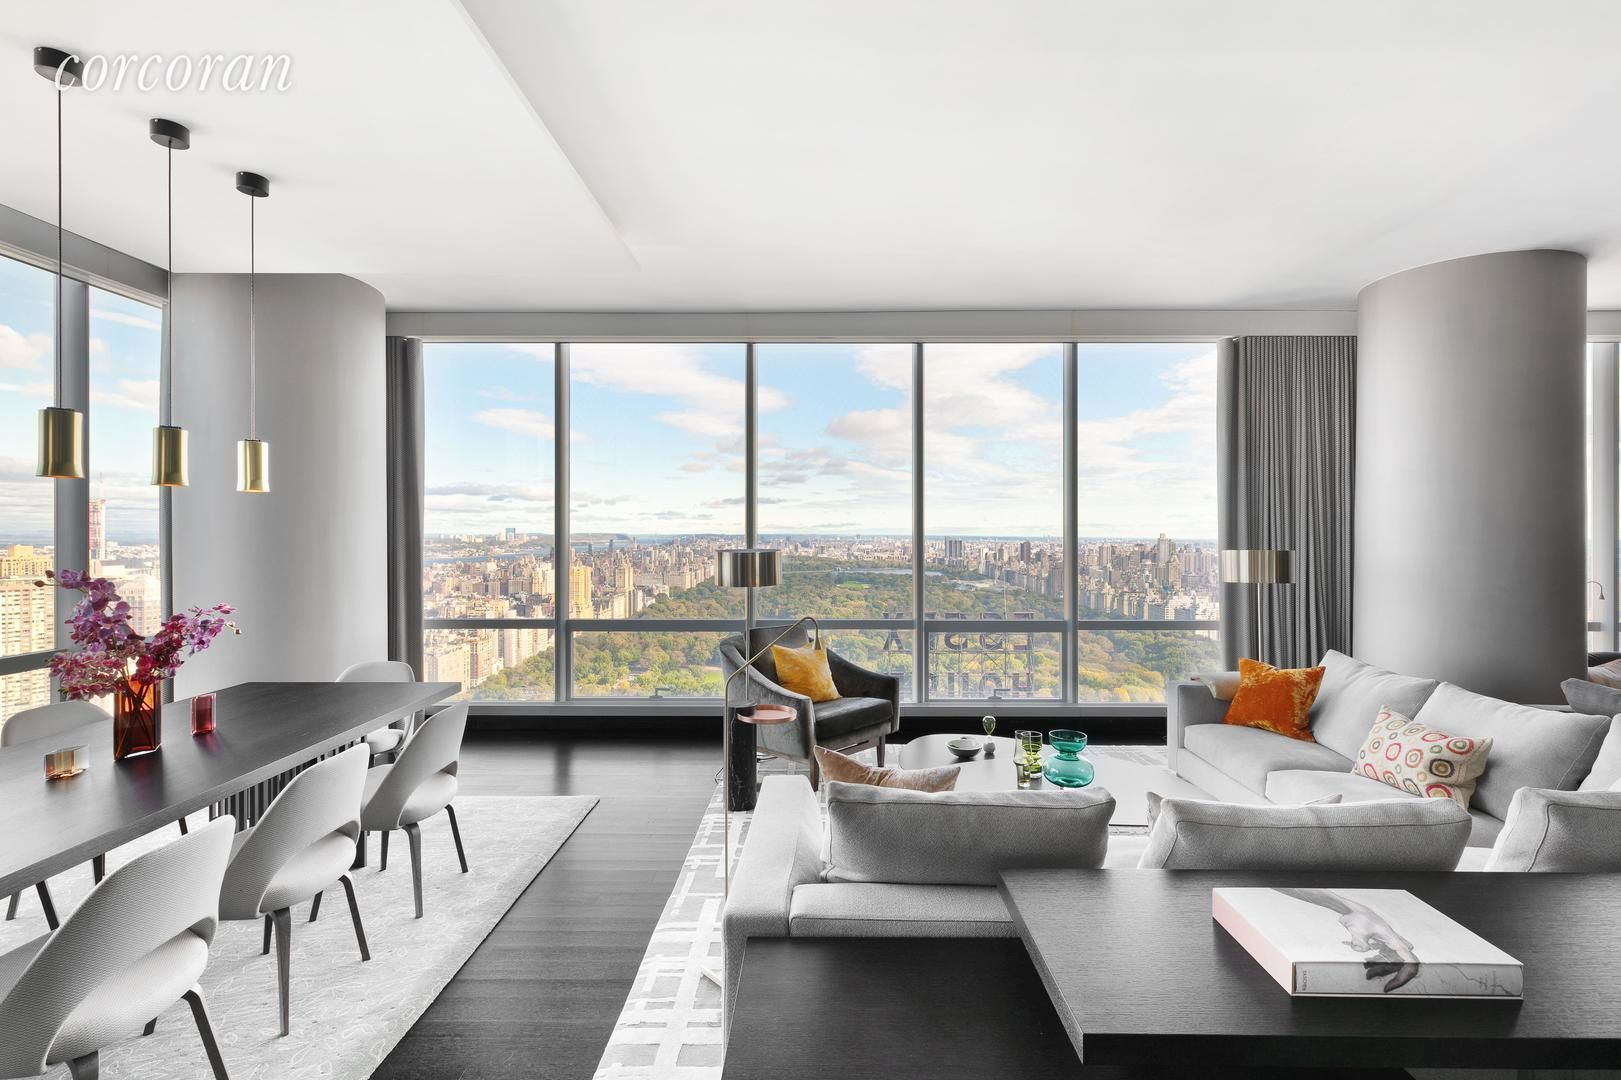 Apartment for sale at 157 West 57th Street, Apt 53A